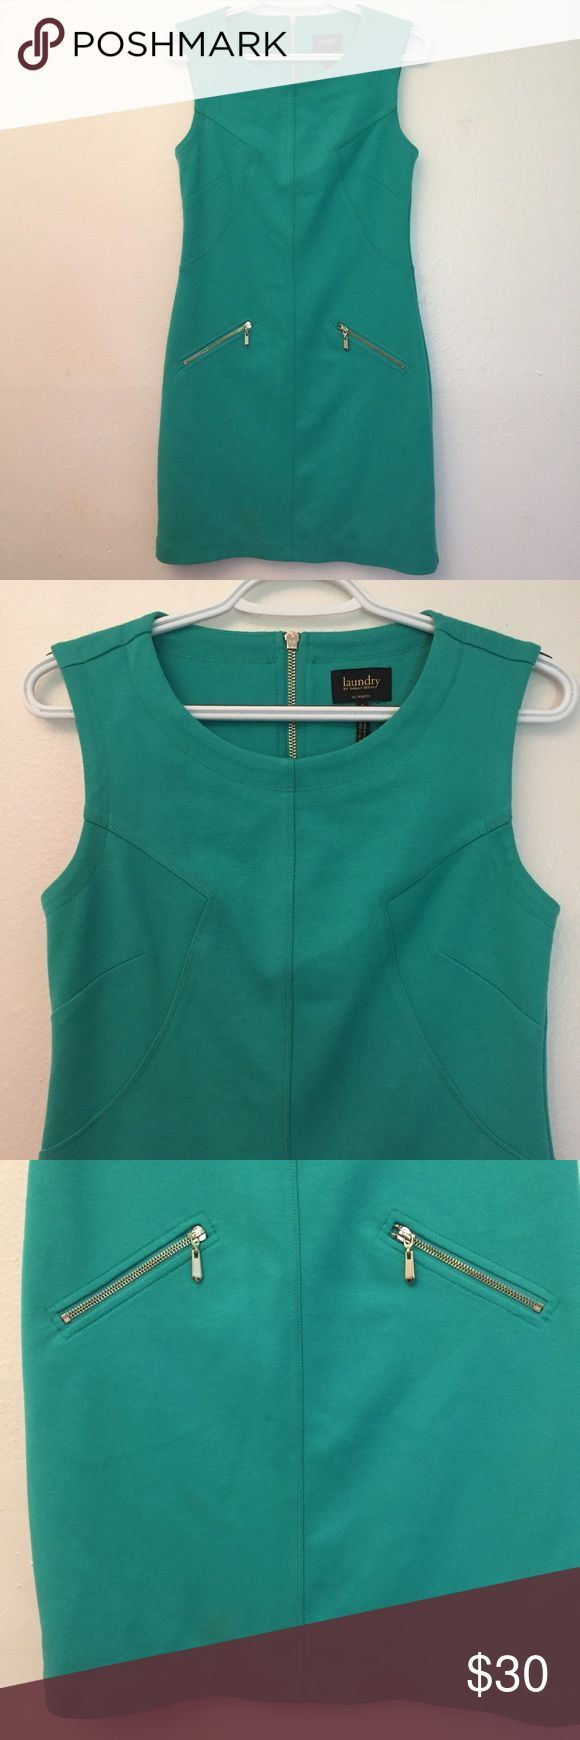 Laundry Dress -hh Good used condition  No spots or holes  Size 6 By Shelli Segal Laundry By Shelli Segal Dresses